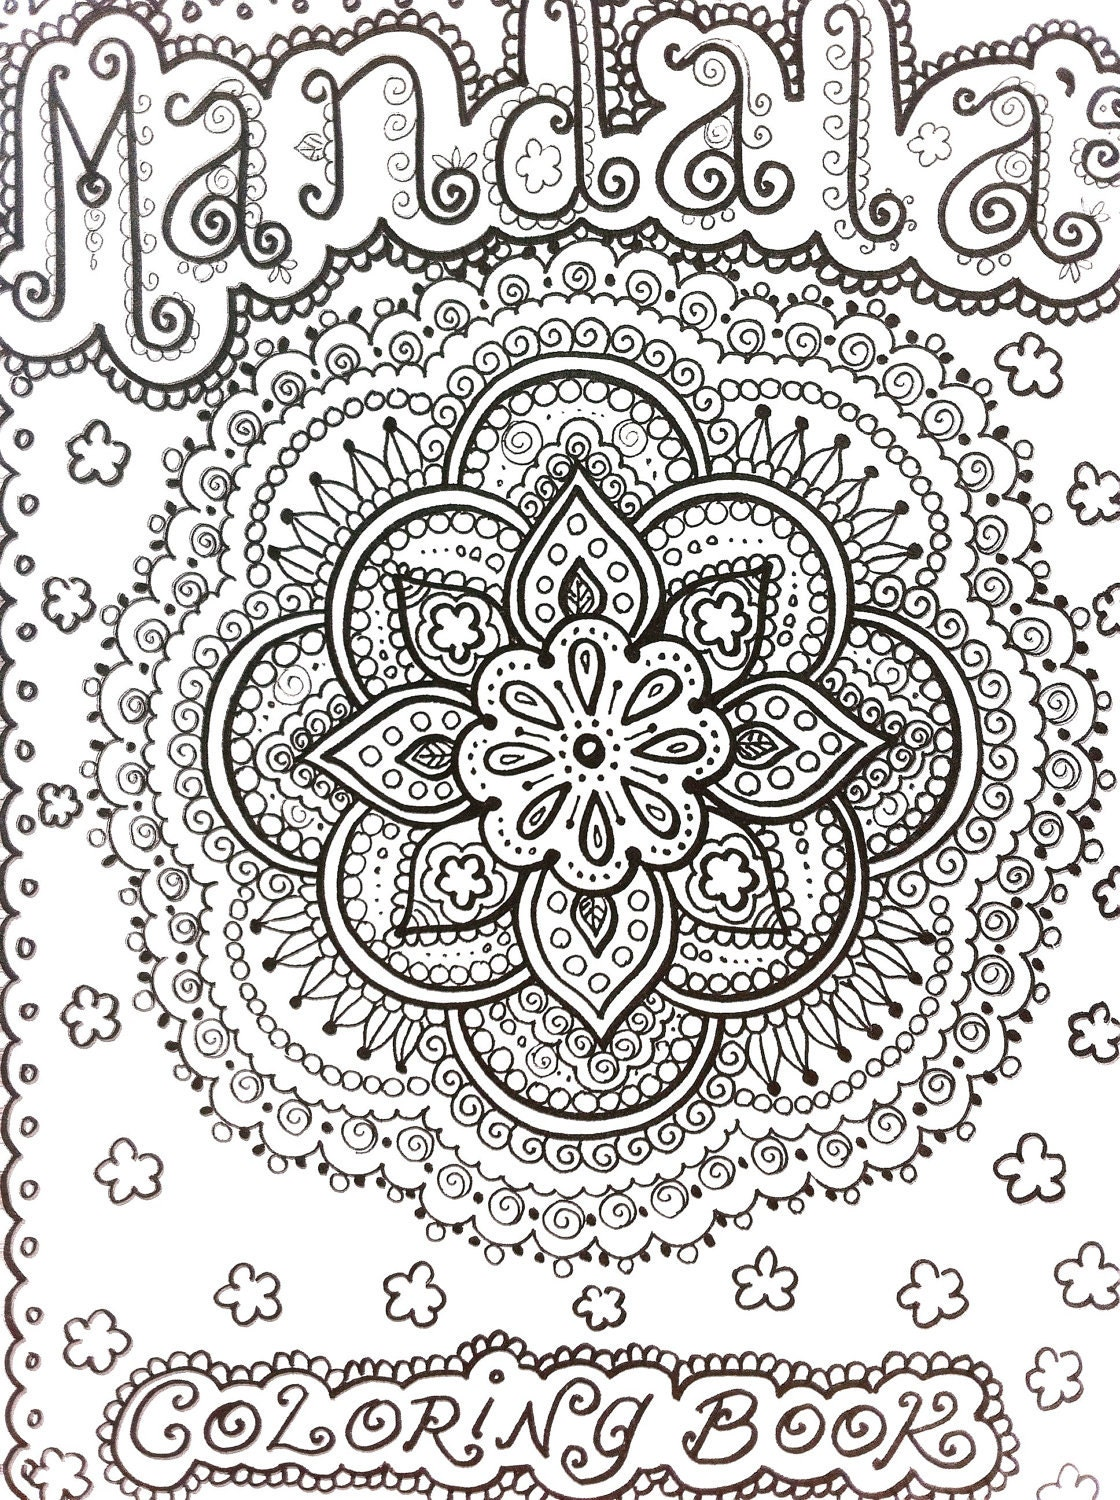 COLORING BOOK Mandalas Henna Style Coloring Book By